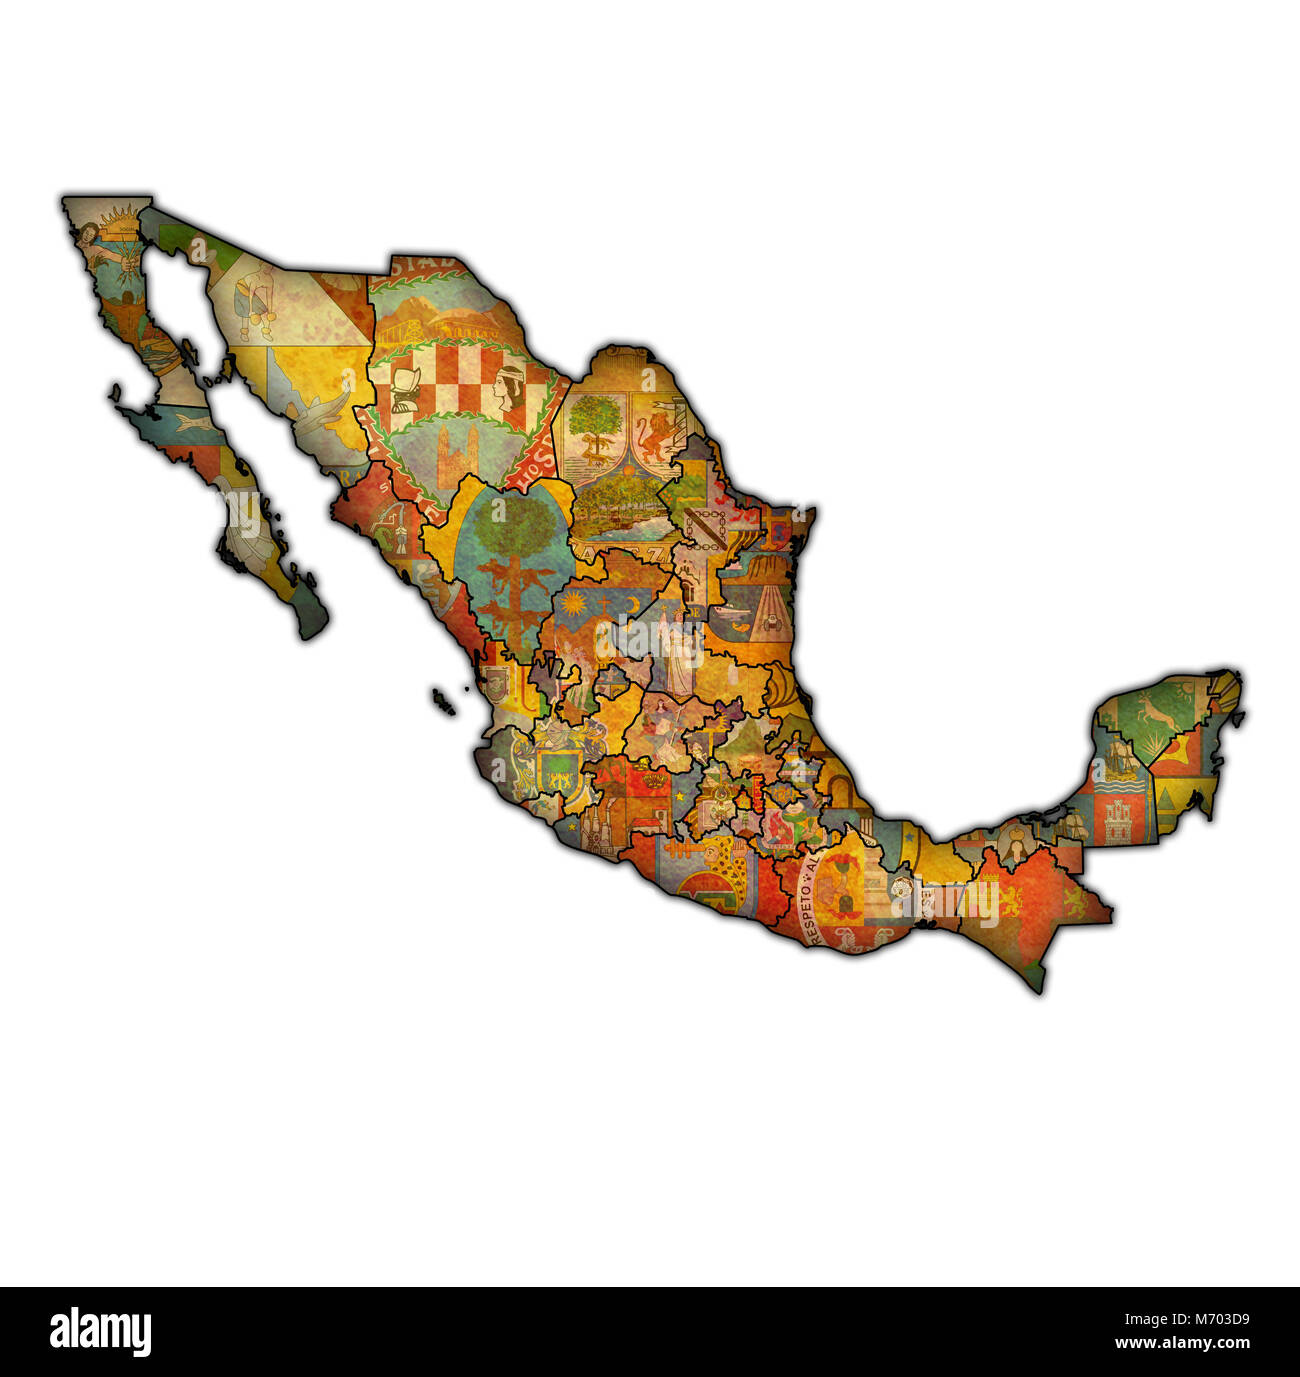 emblems of states of Mexico on map with administrative divisions and borders - Stock Image